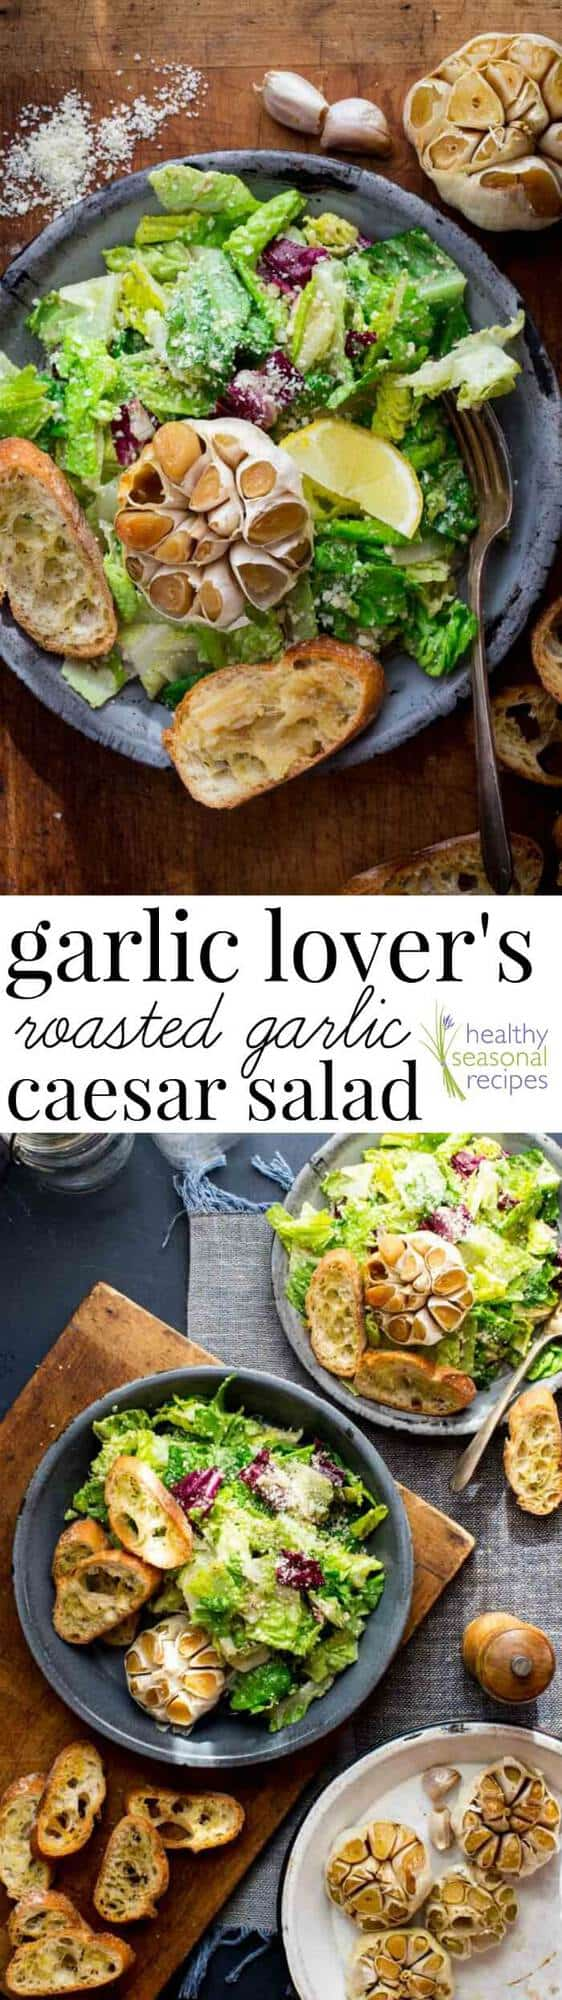 Caesar salad collage with text overlay